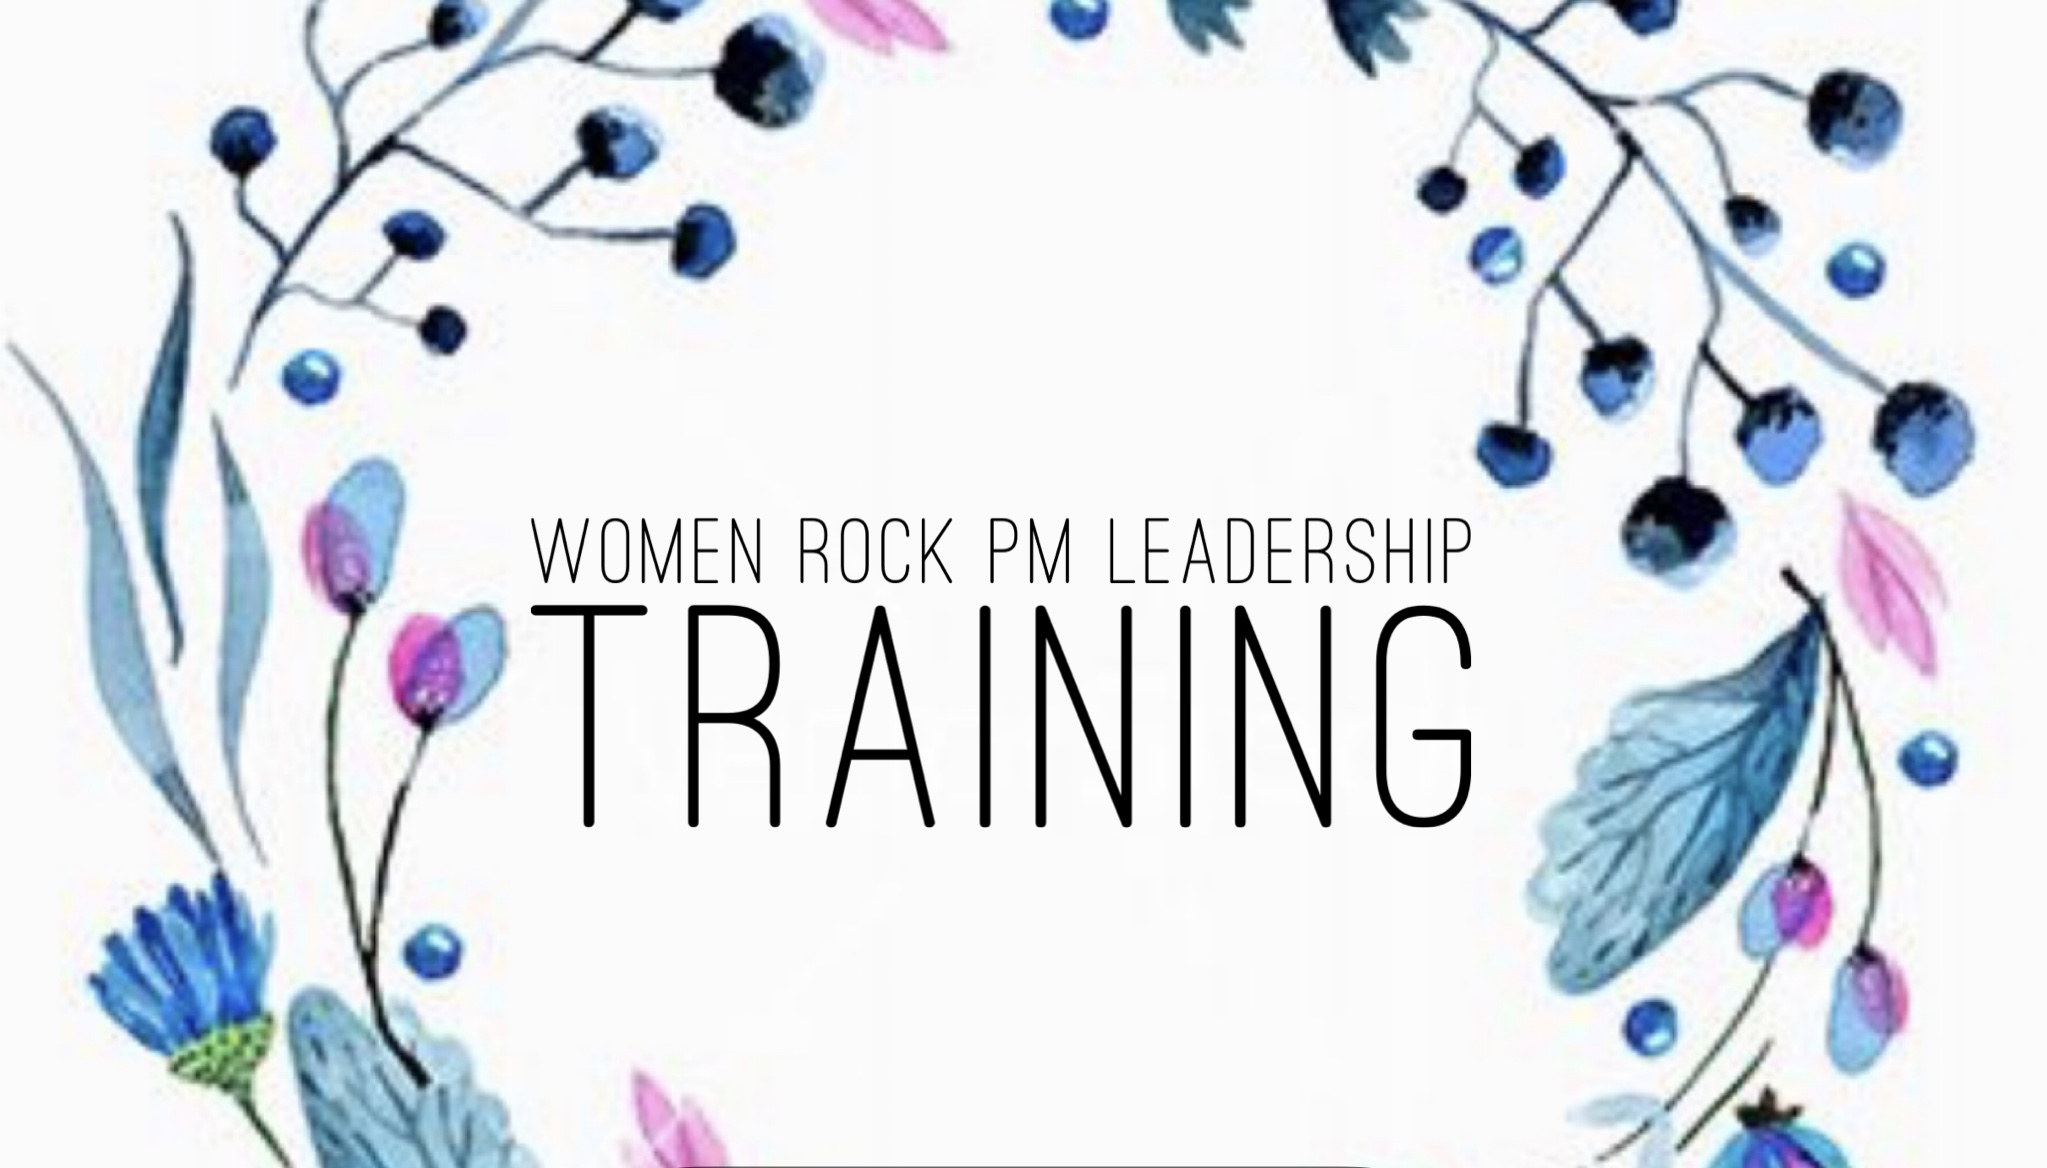 Women Rock PM Leadership Training